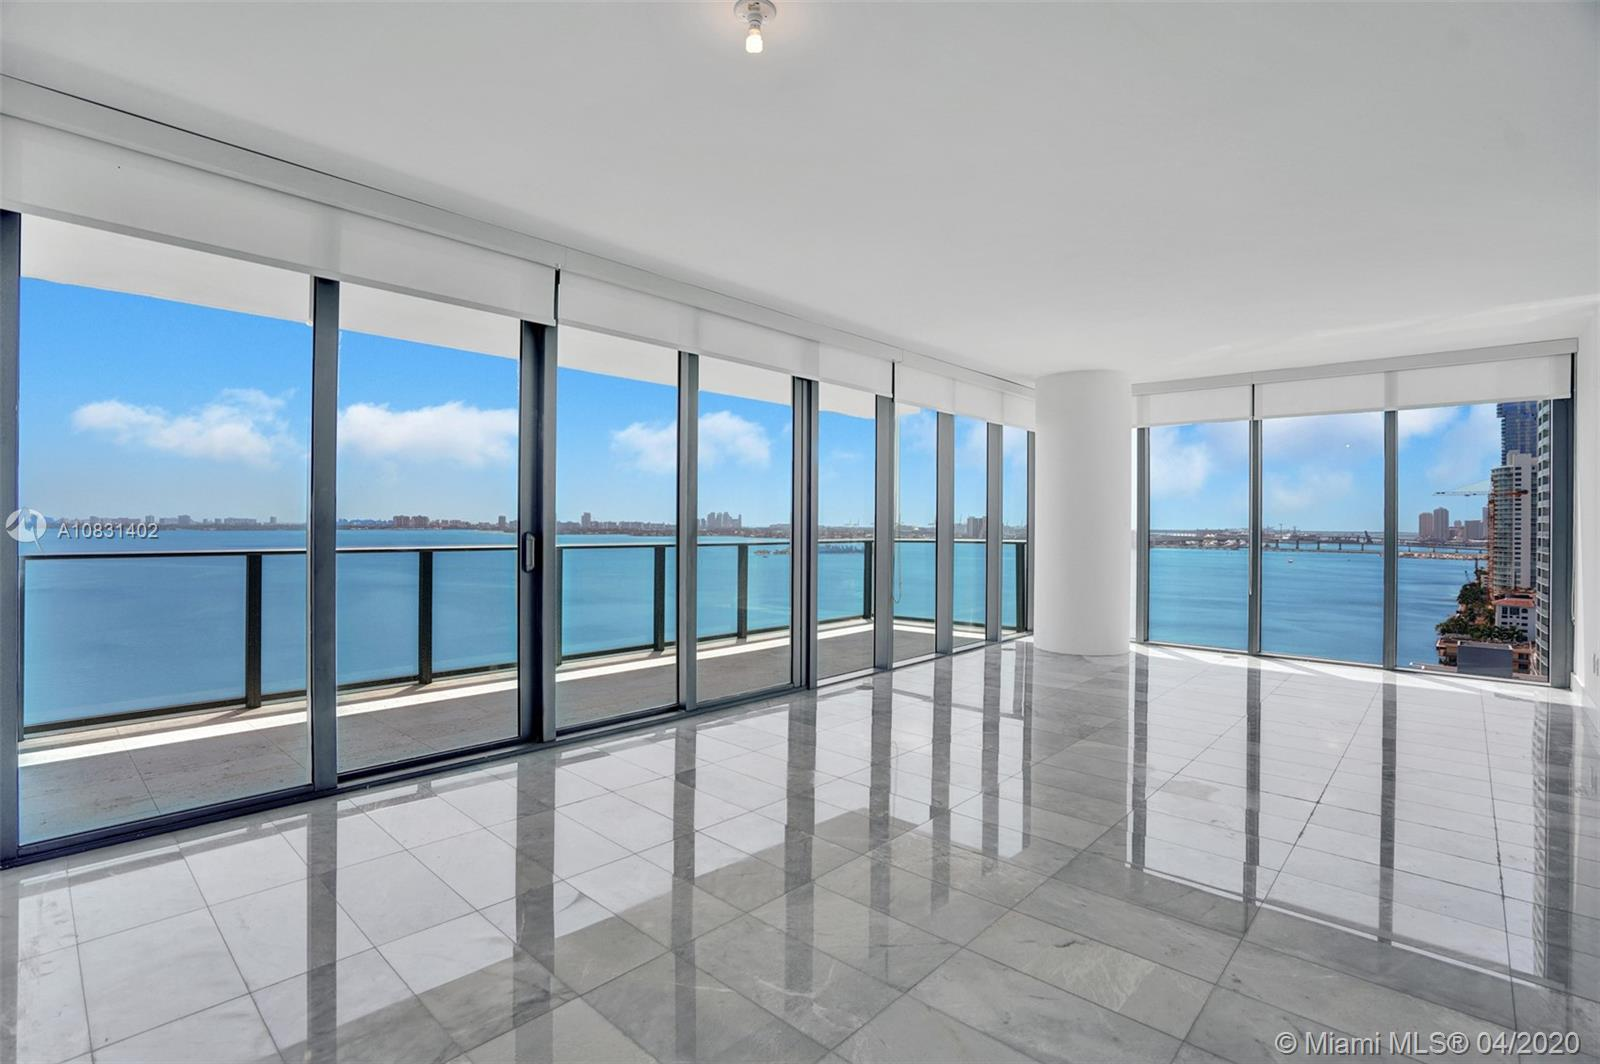 3131 NE 7 # 1701, Miami, Florida 33137, 3 Bedrooms Bedrooms, ,4 BathroomsBathrooms,Residential Lease,For Rent,3131 NE 7 # 1701,A10831402